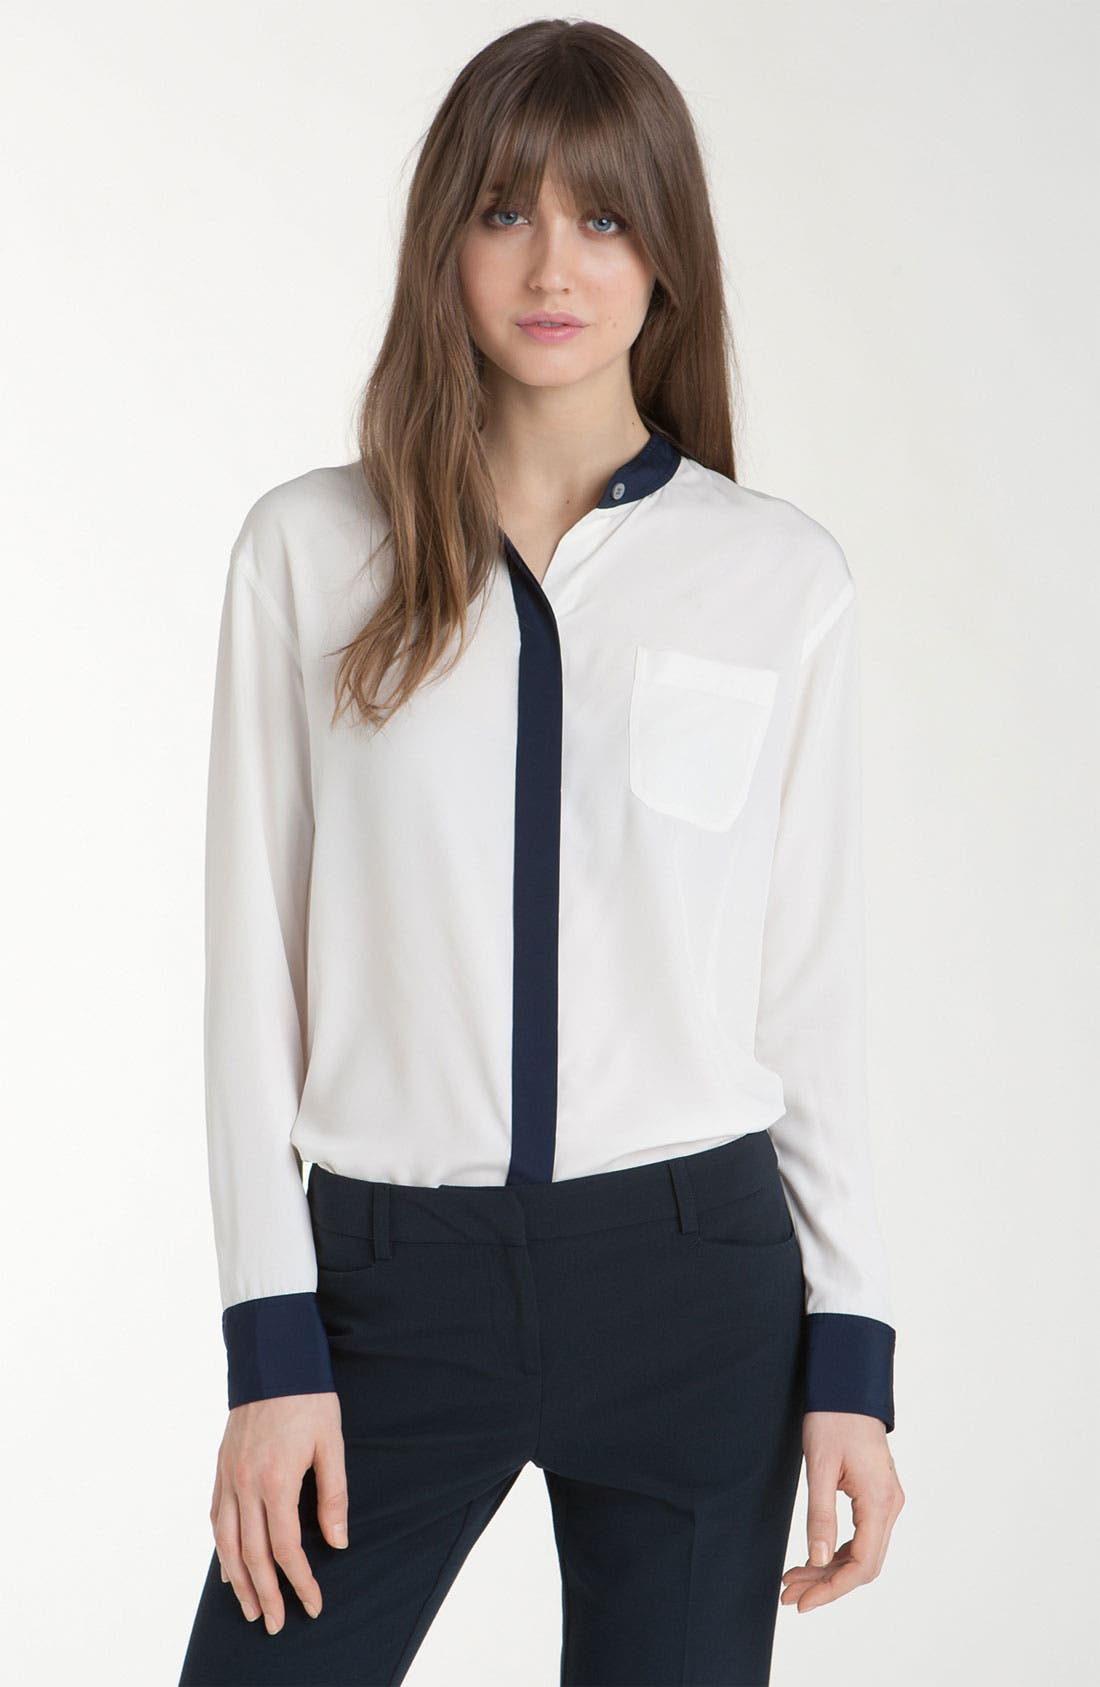 Alternate Image 1 Selected - Vince Camuto Stand Collar Shirt with Contrast Trim (Petite)